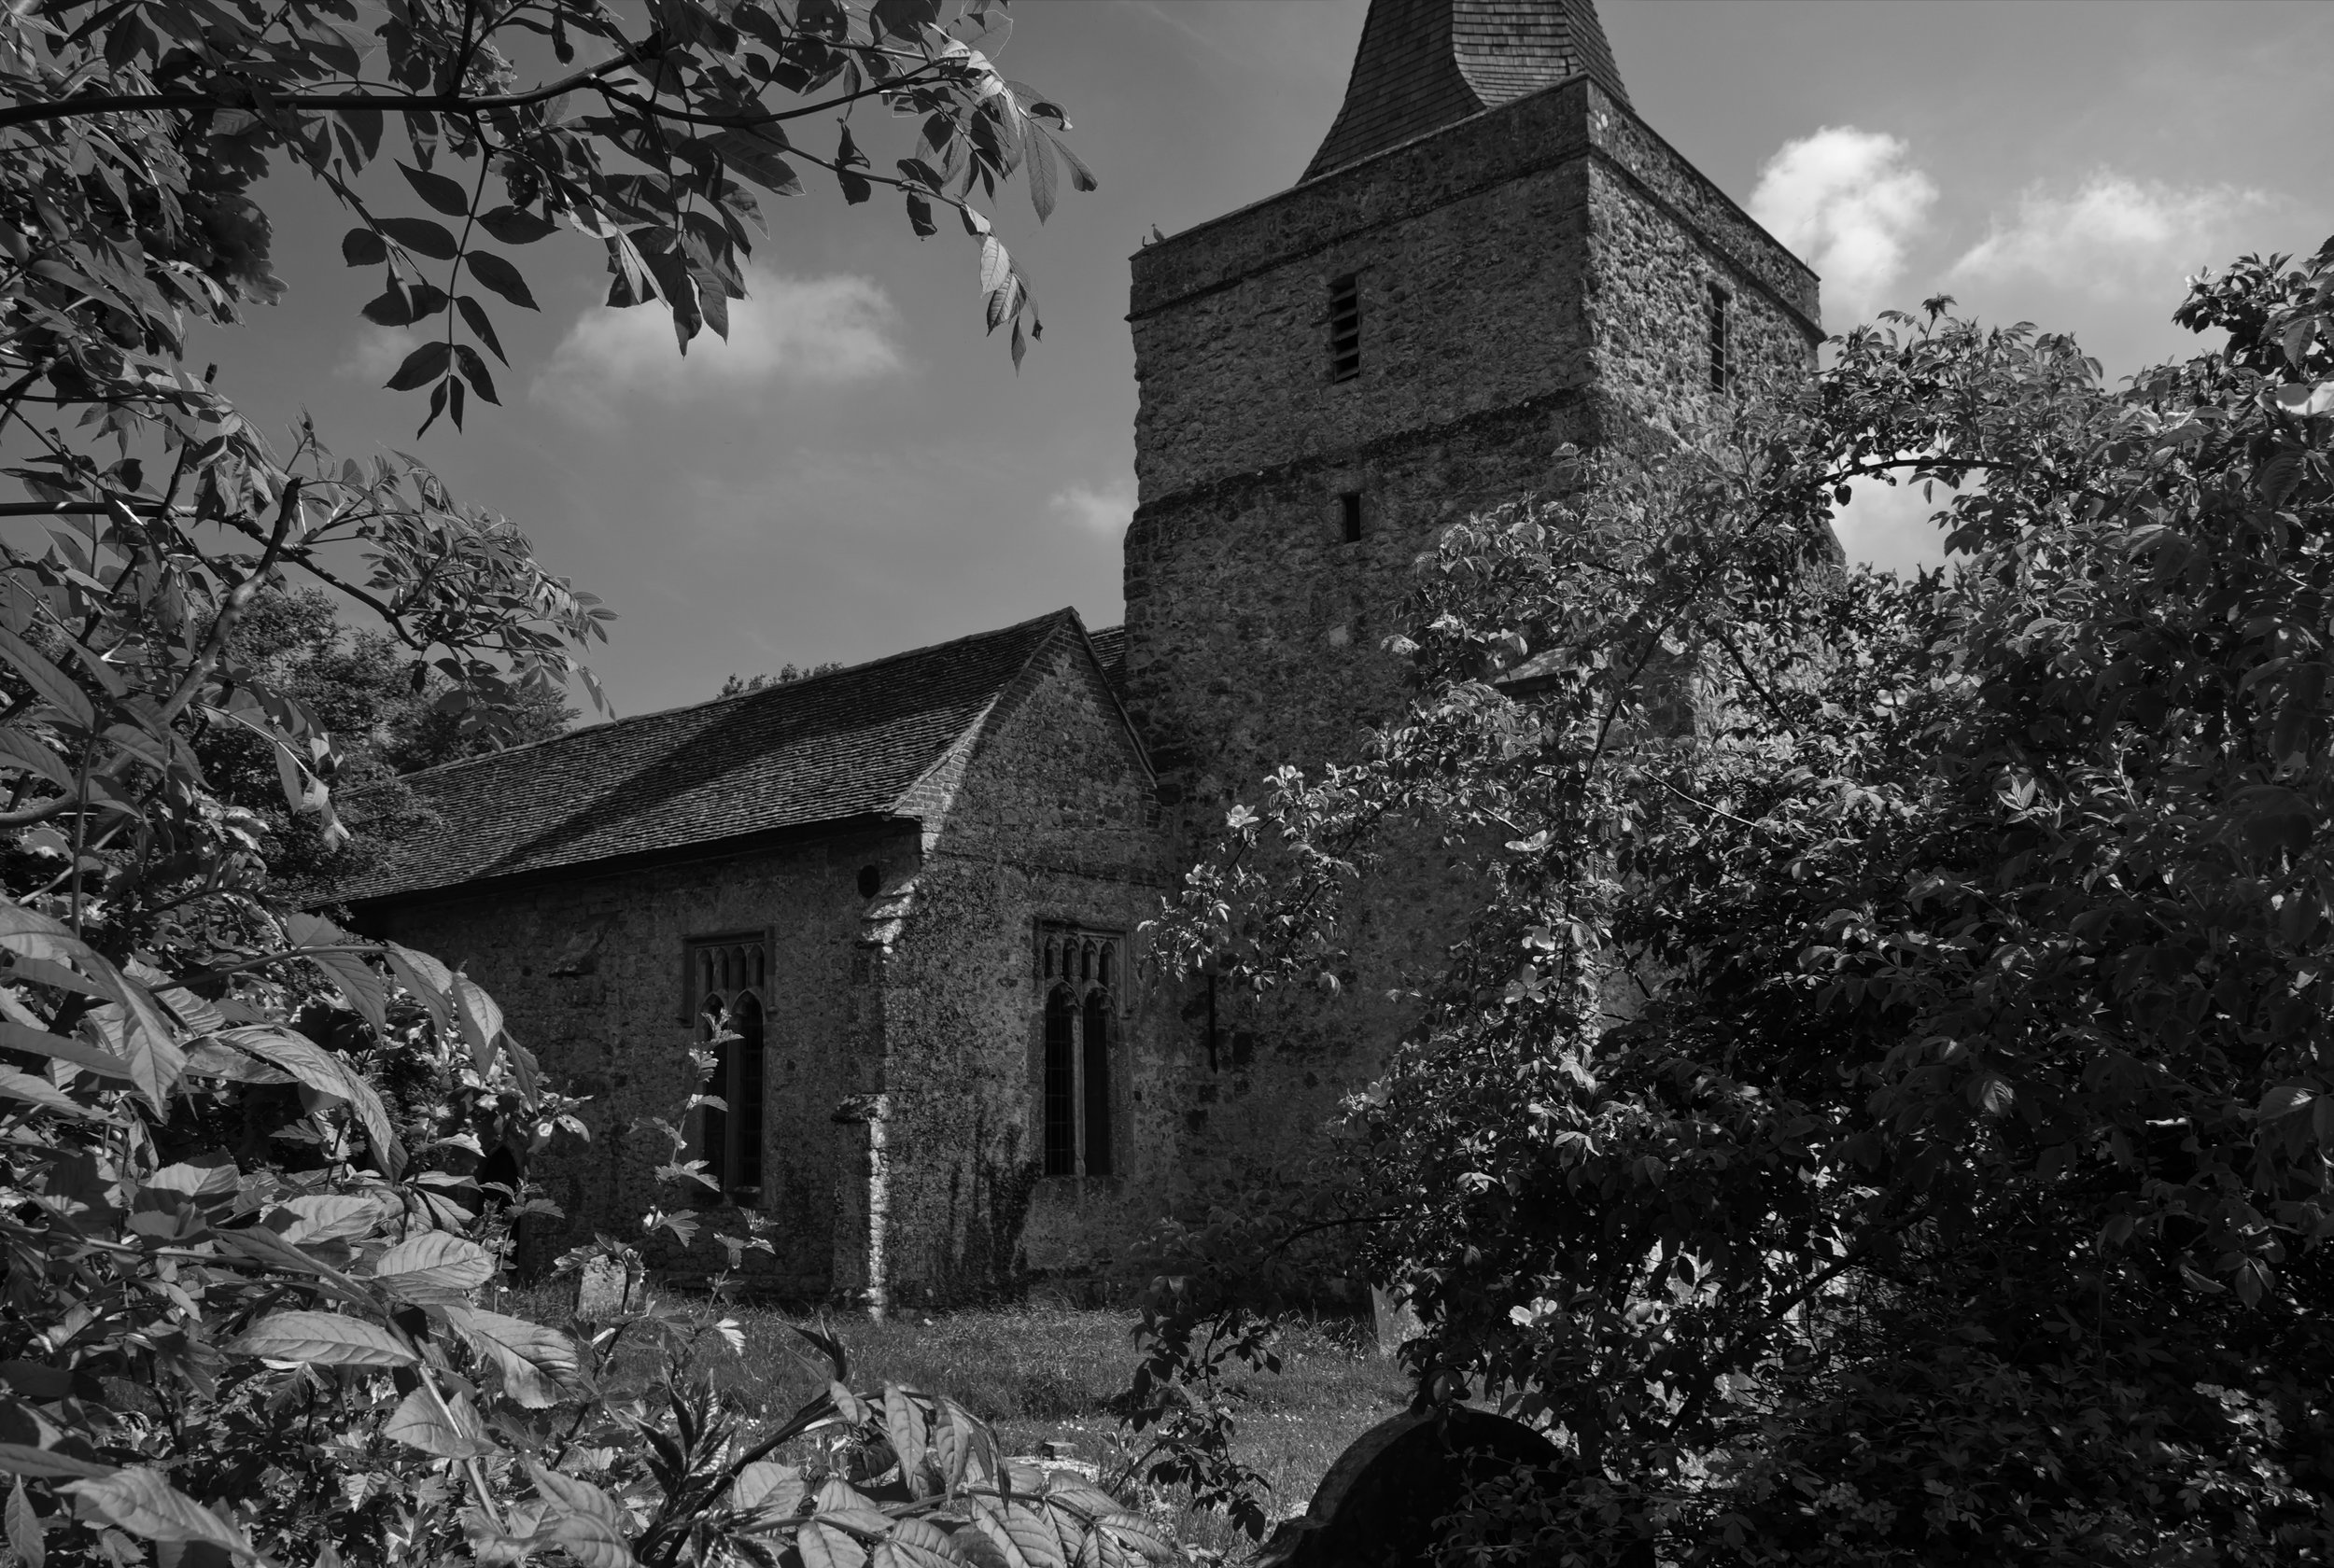 st-margarets-church-hothfield_47292198542_o.jpg